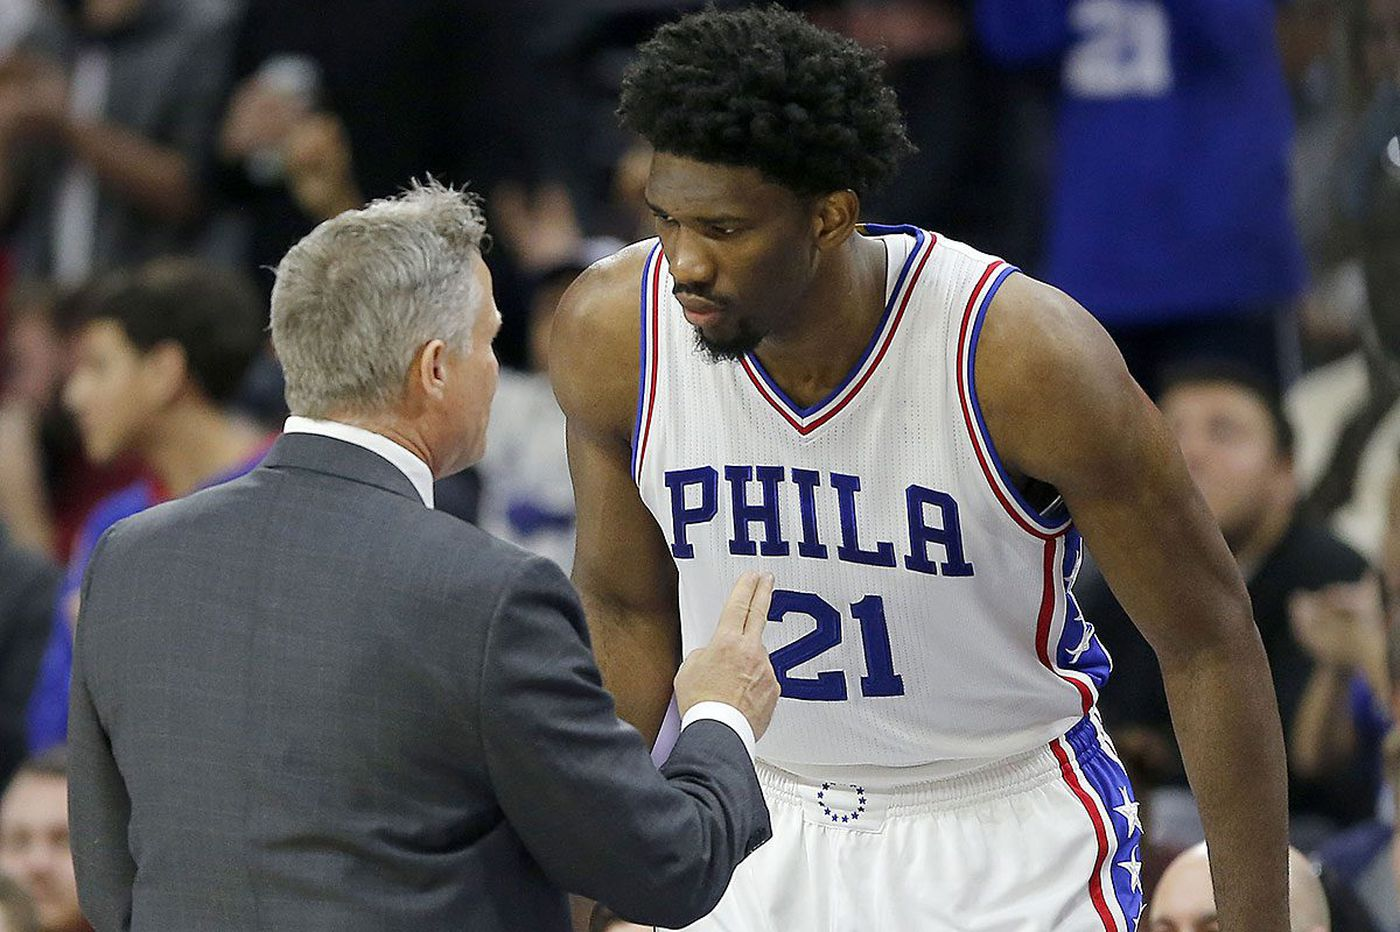 Sixers' Joel Embiid given night off for Friday's game at Detroit Pistons